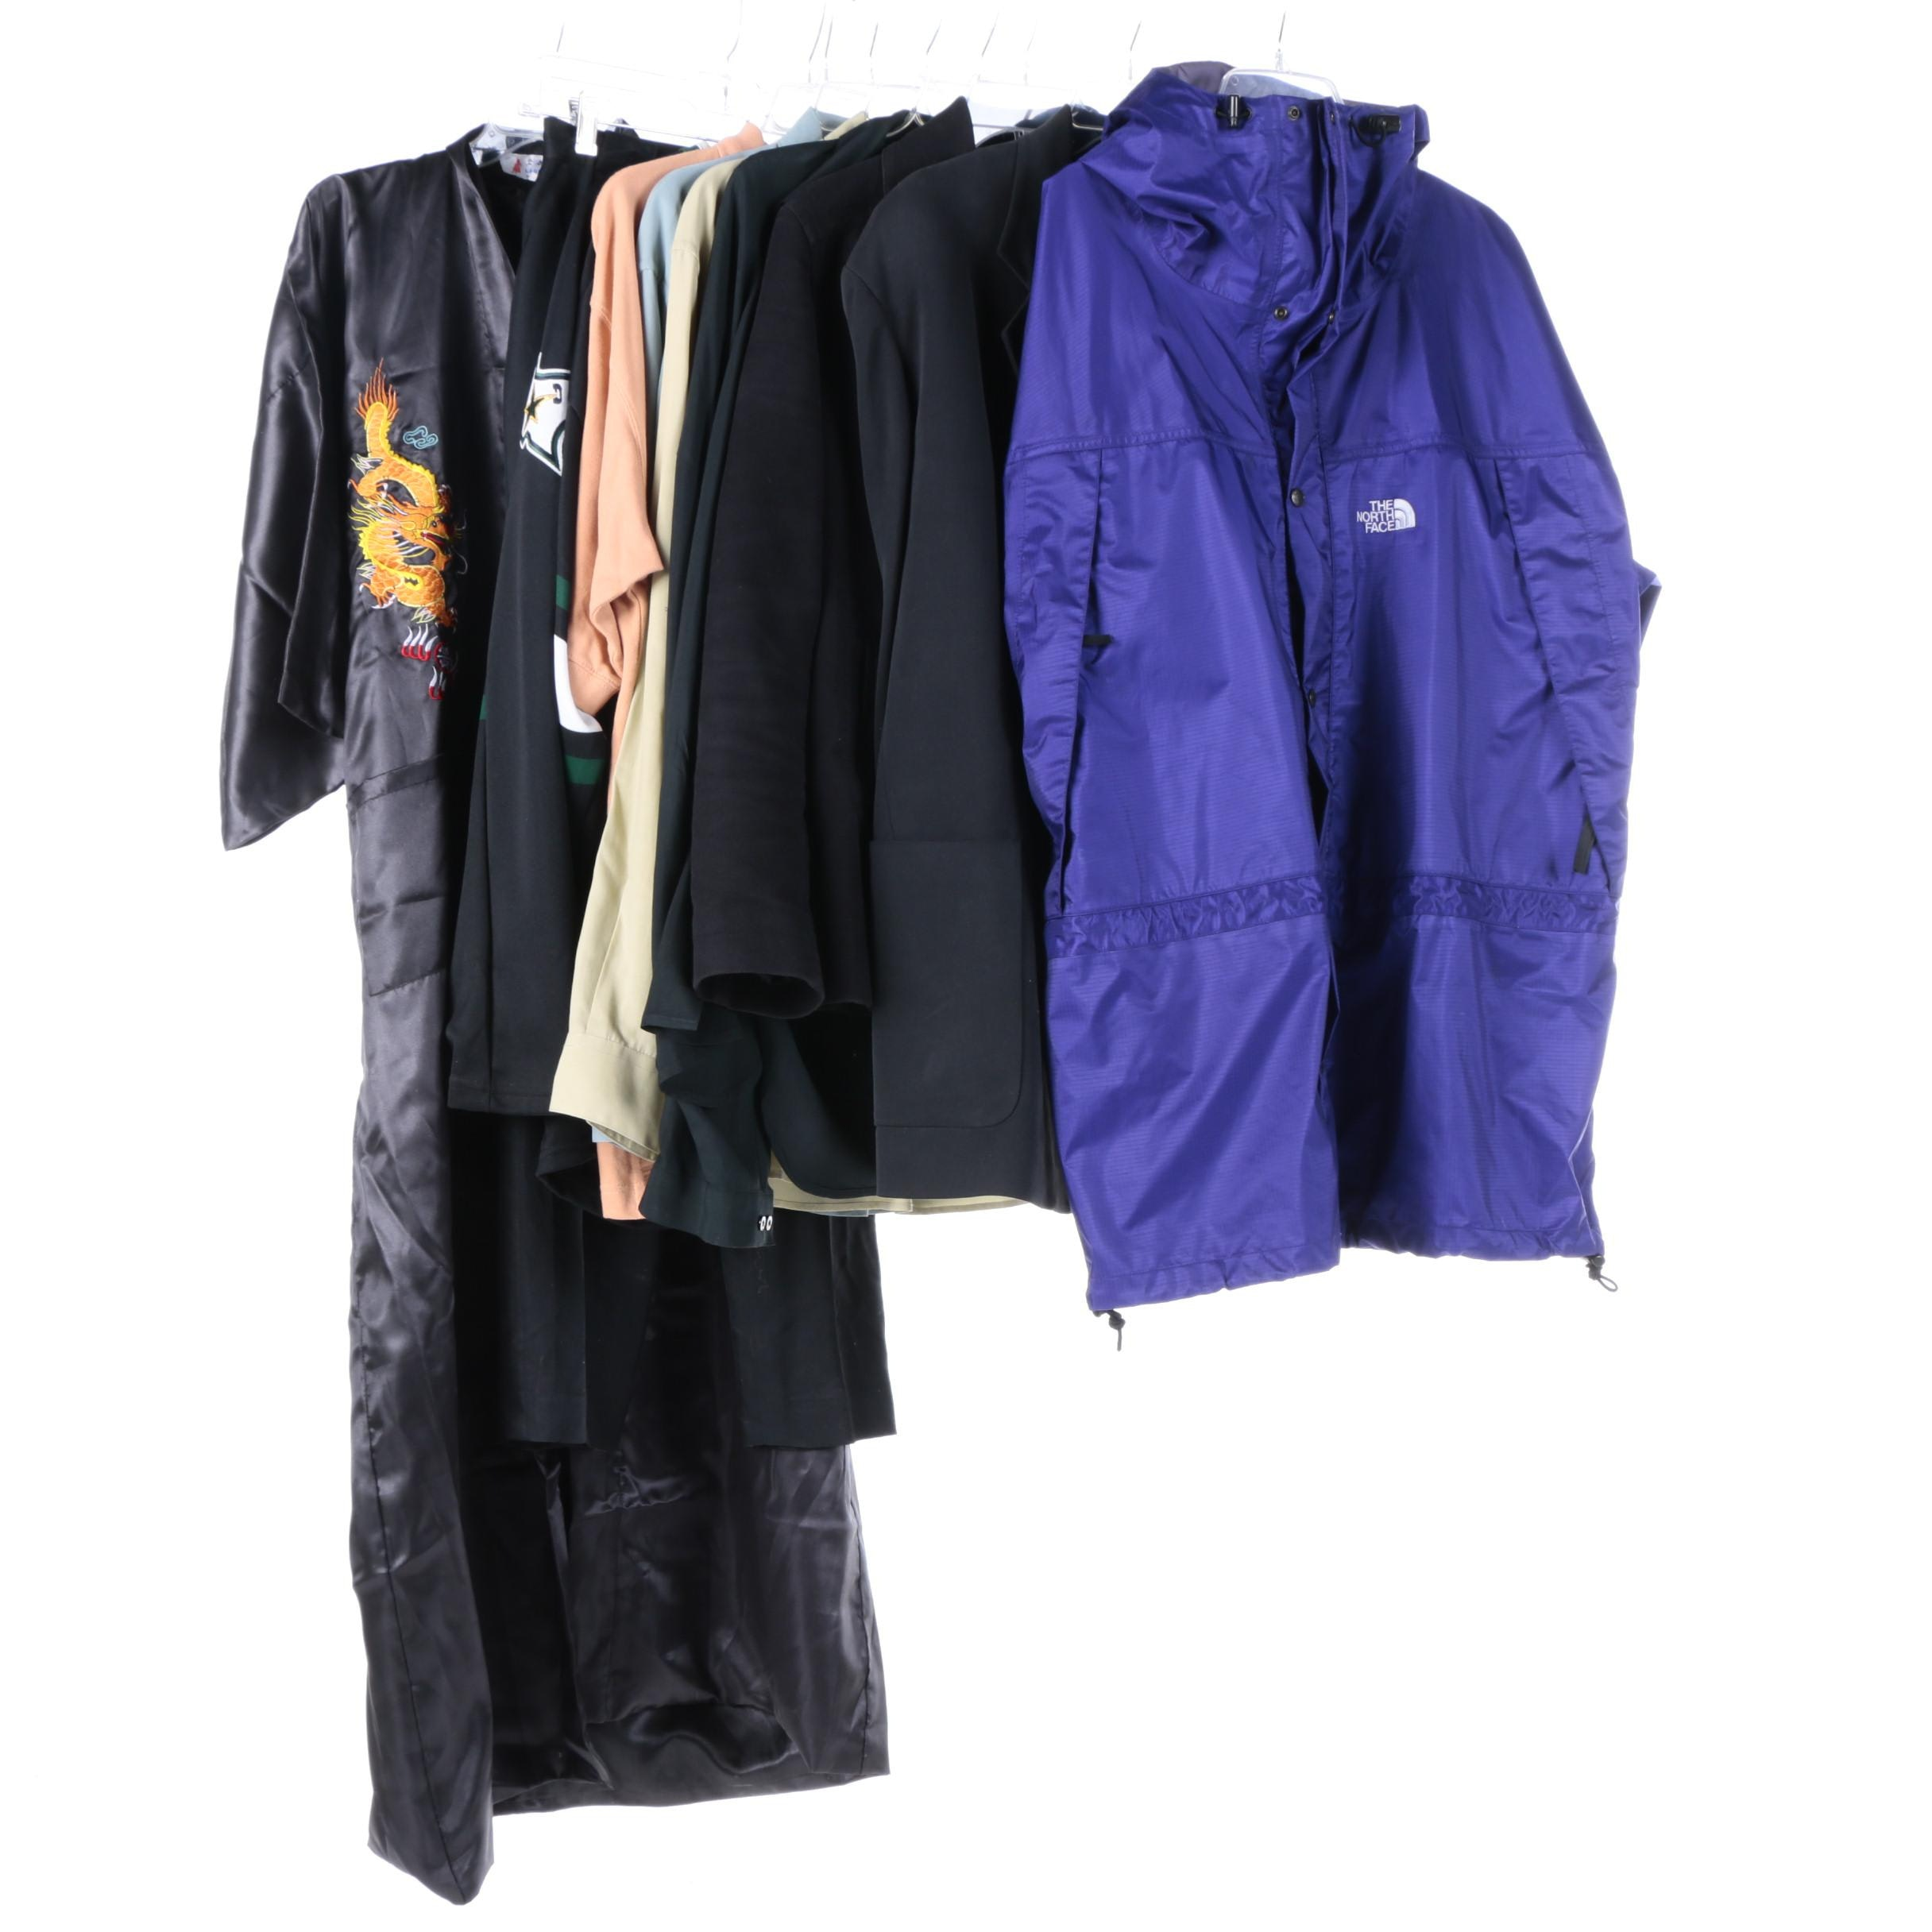 Men's and Women's Clothing Including The North Face